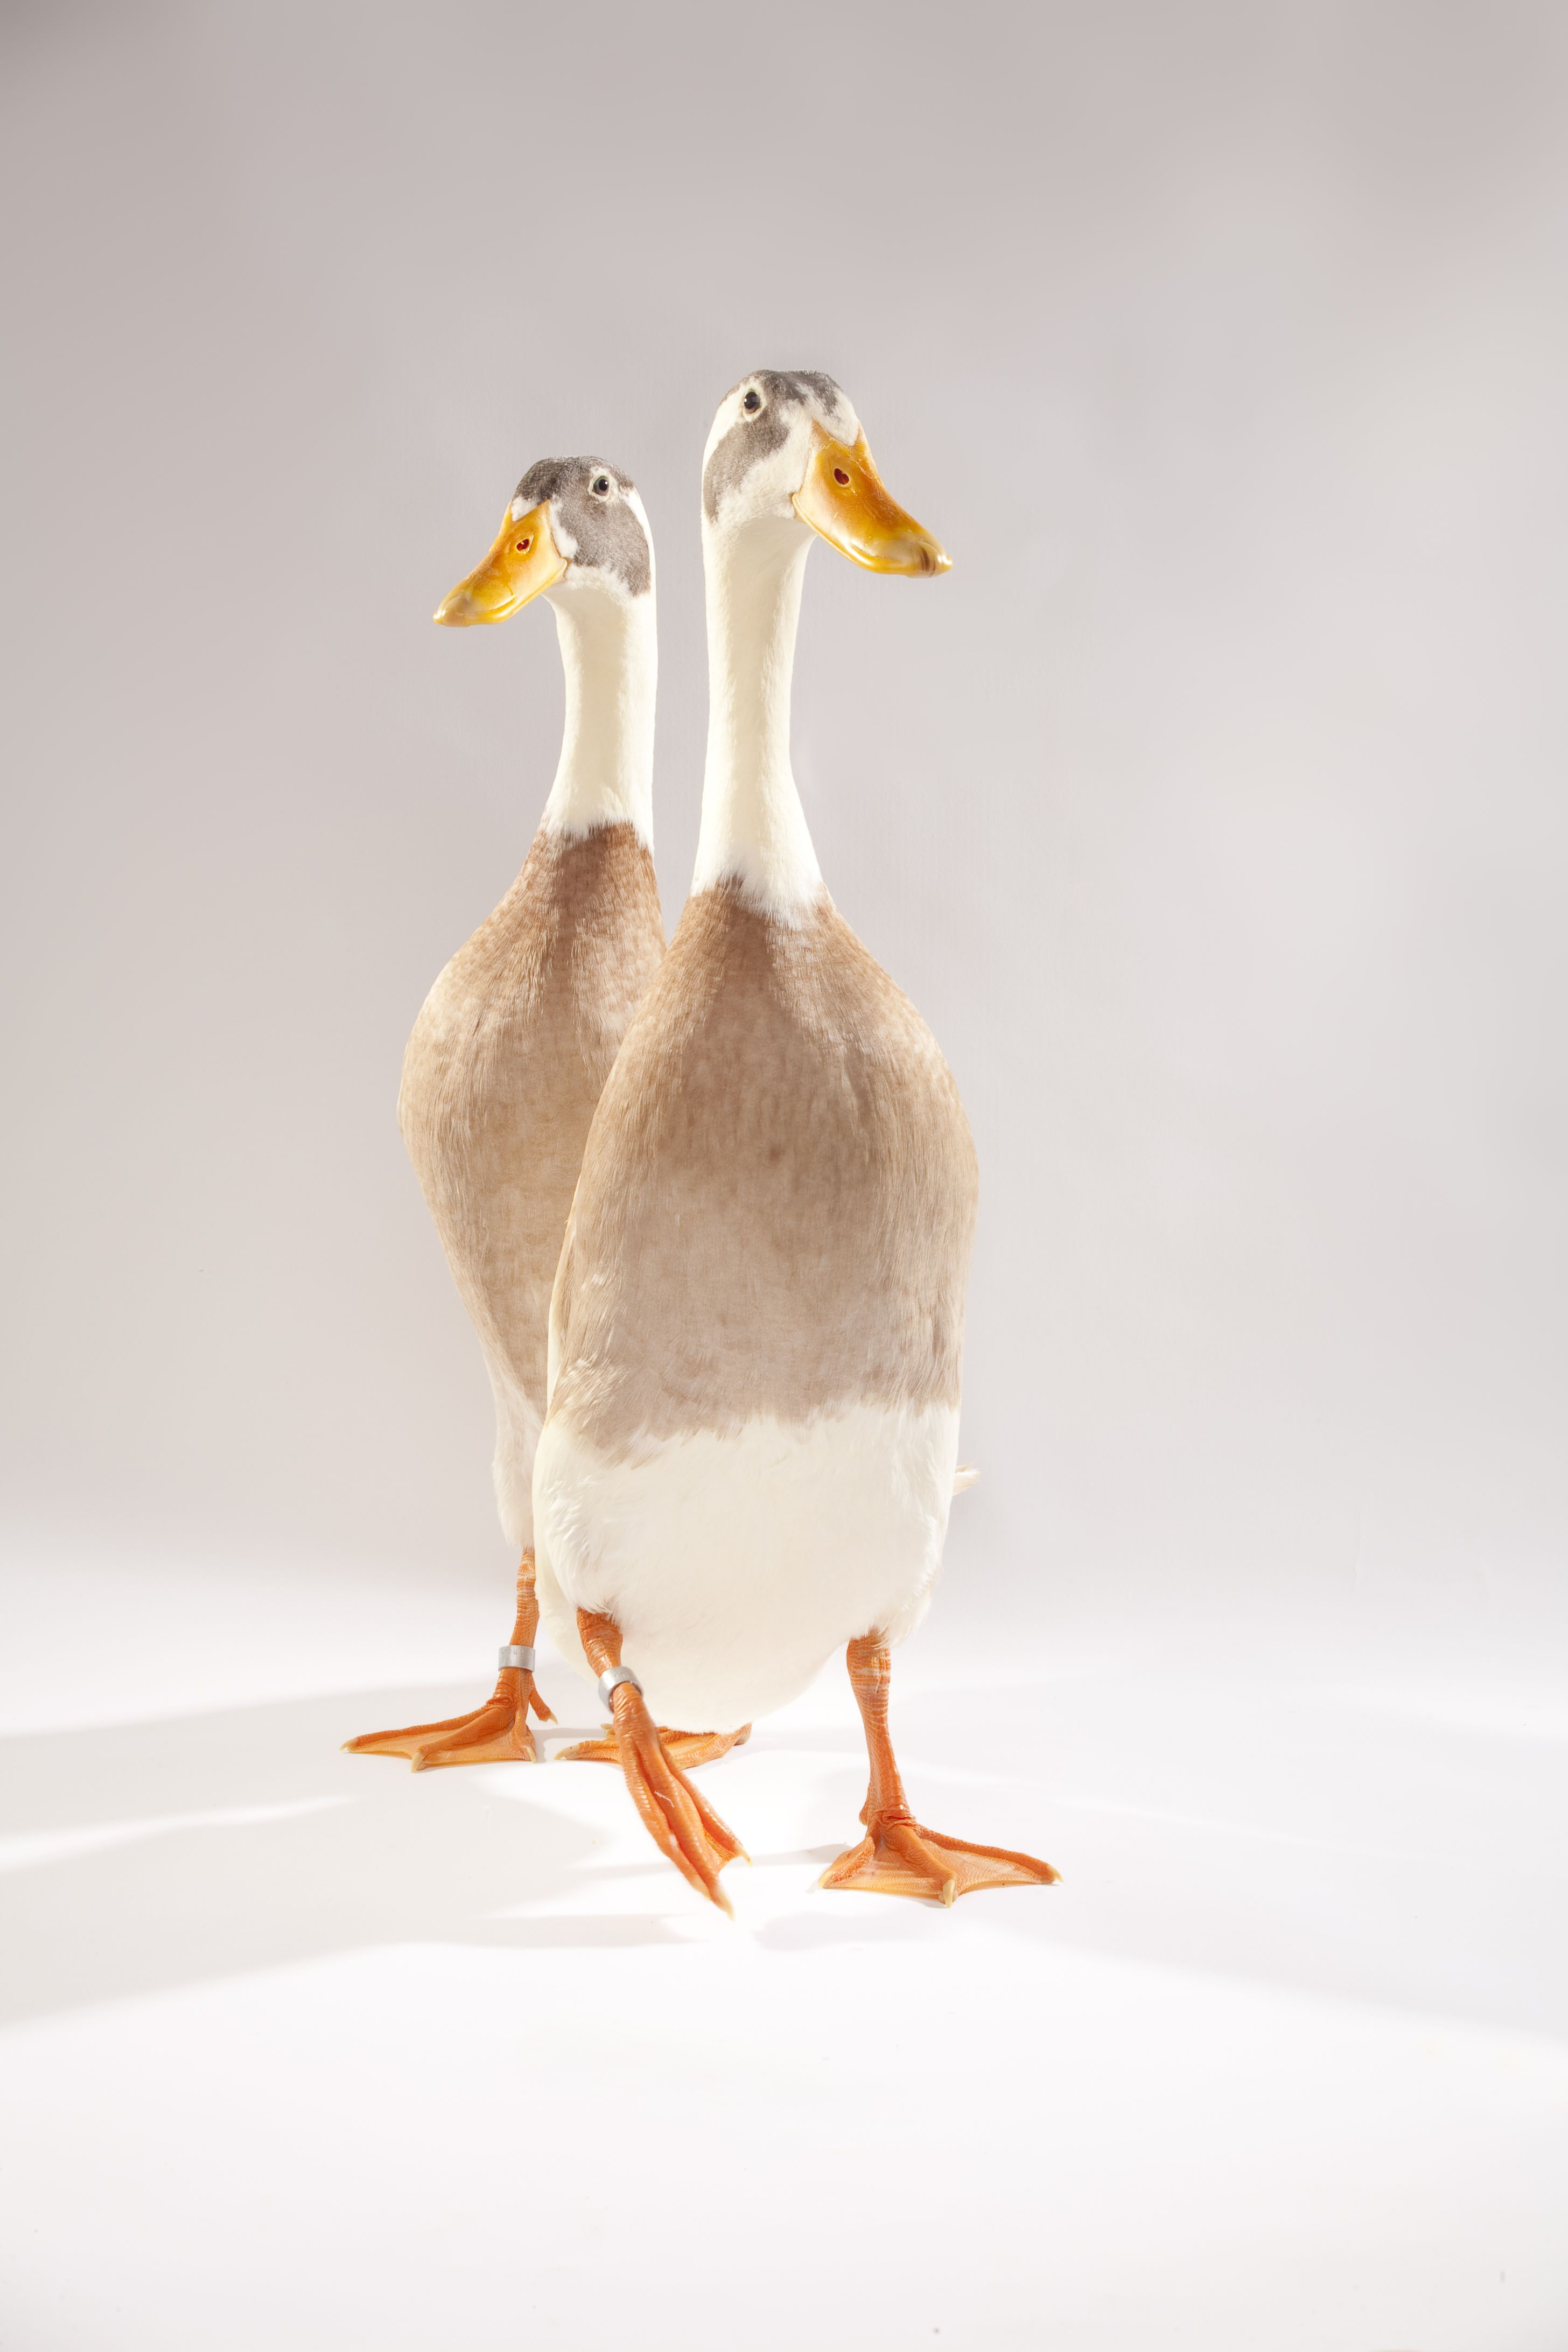 indian runner duck oregon zoo clay pinterest zoos bird